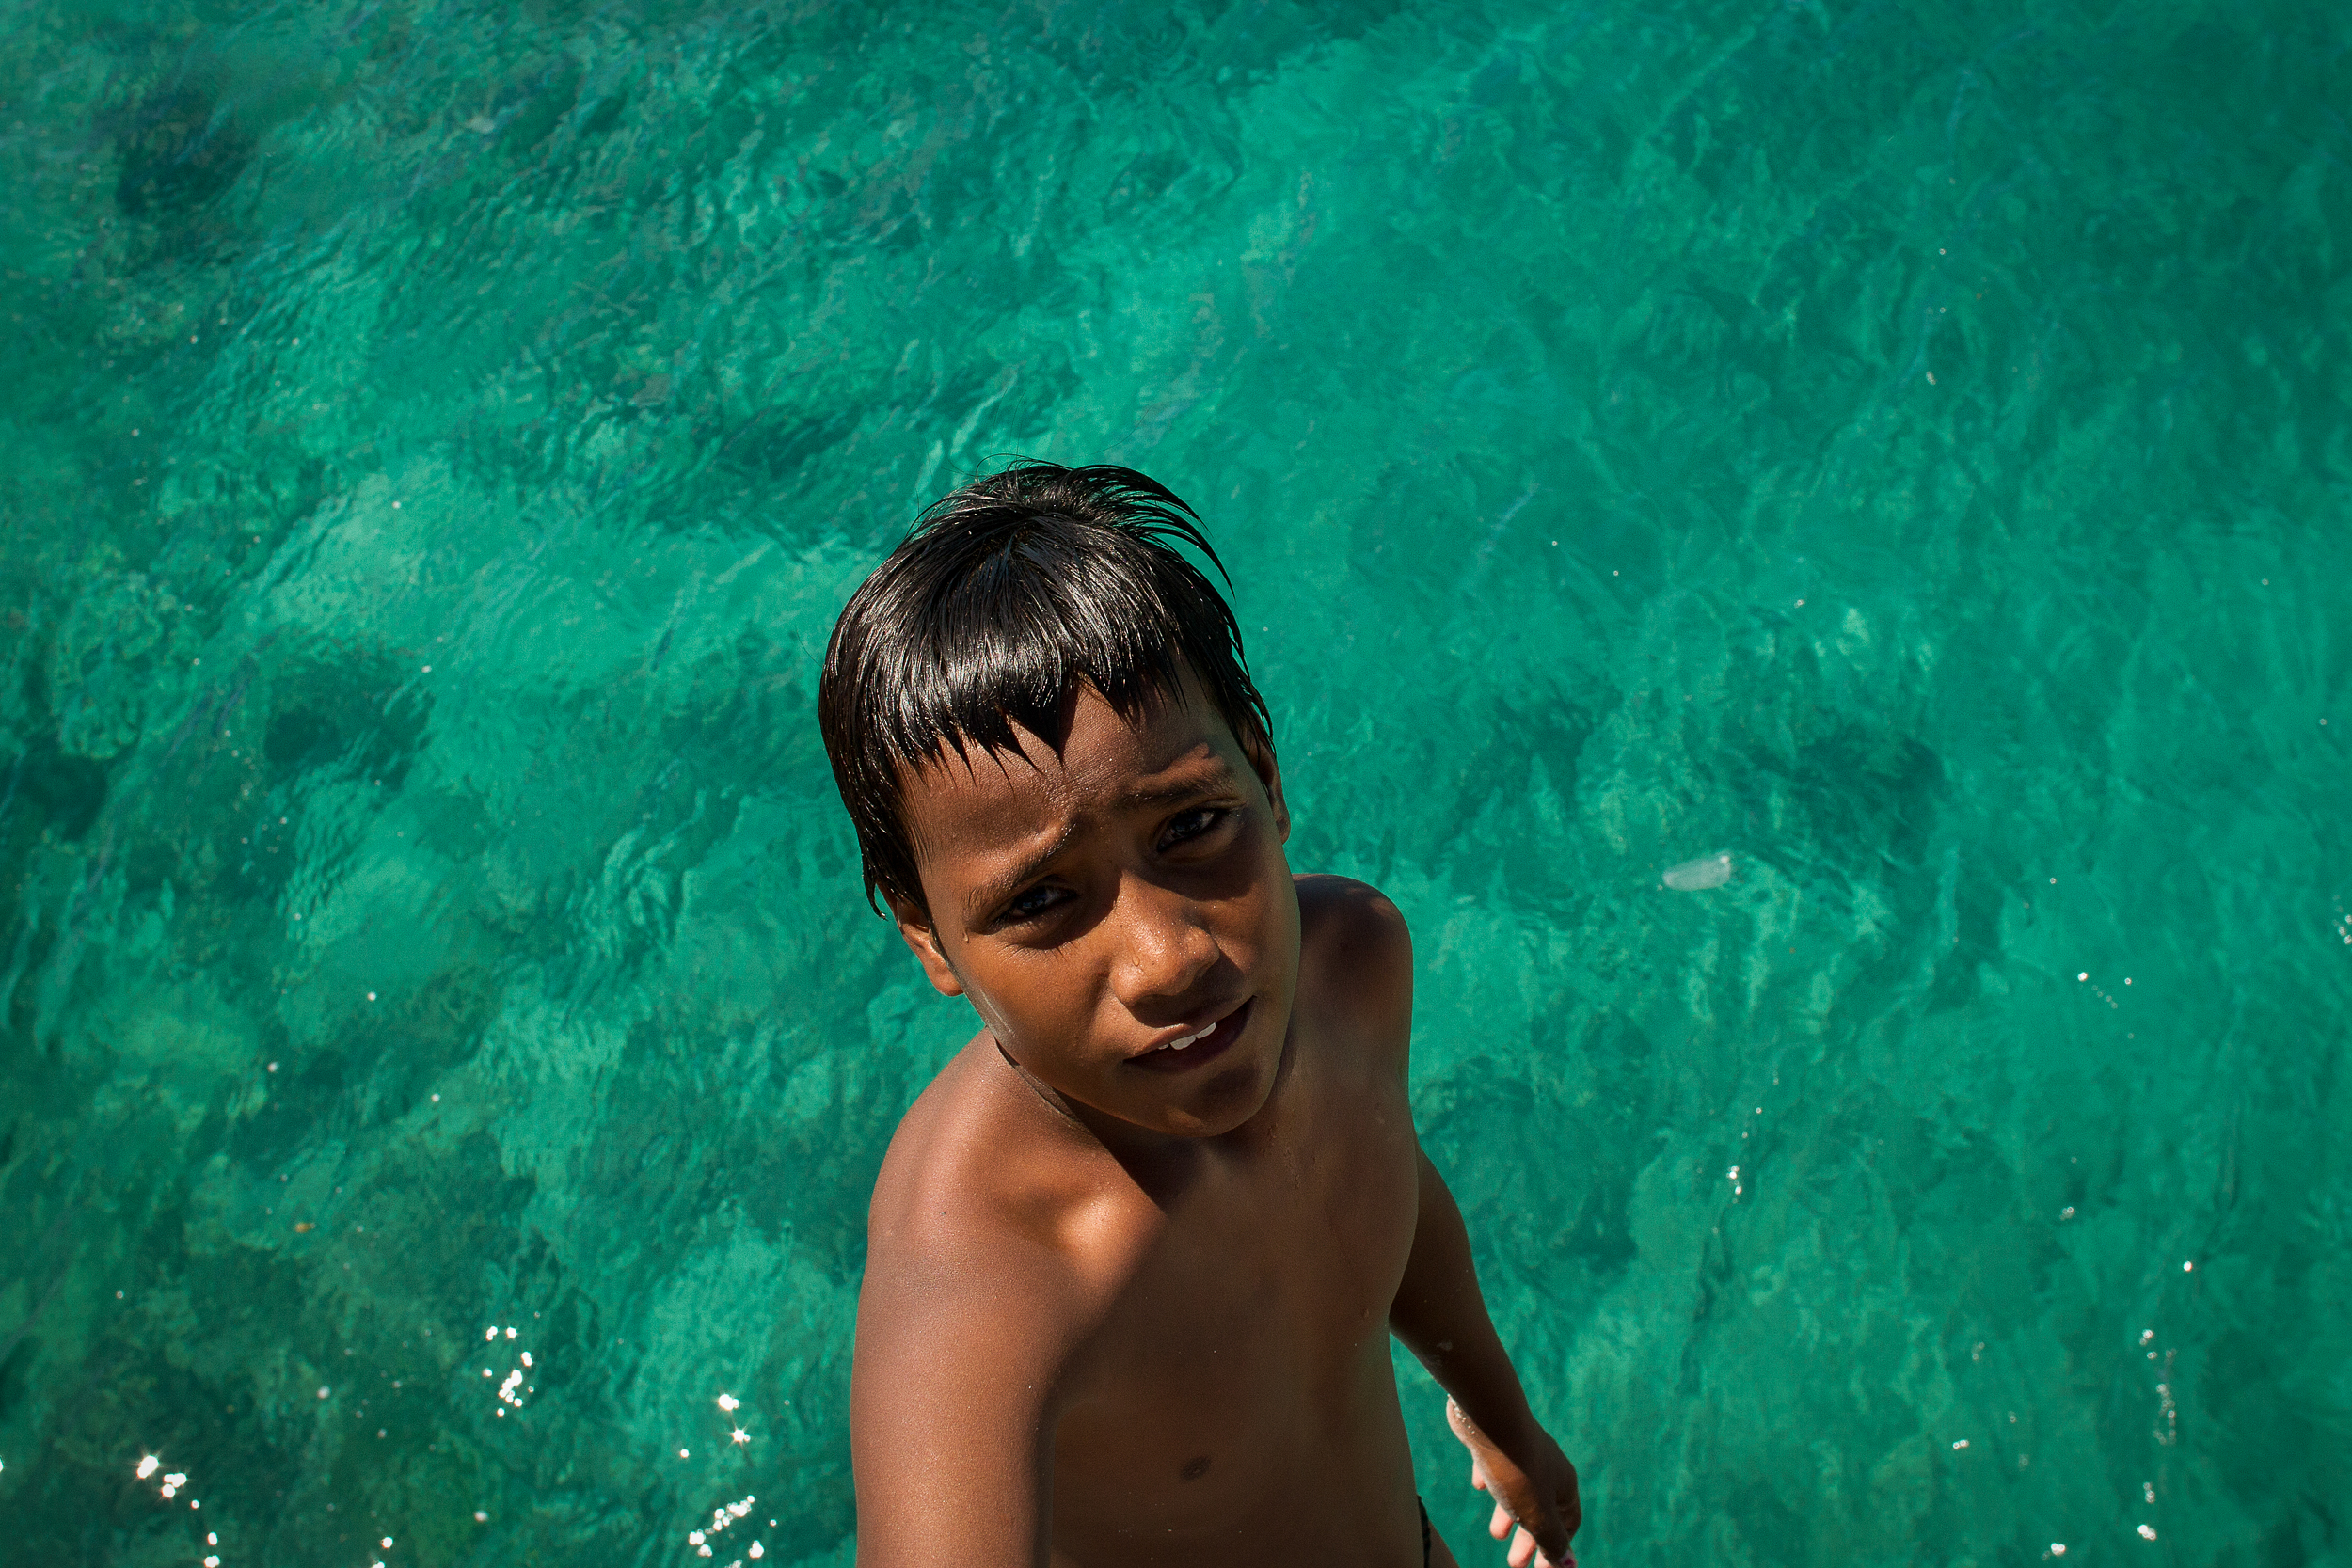 A young boy hangs off a bridge above the water rushing out below. Kiribati is focused on ensuring the youth acquire adequate skills and education to enable them to be able migrate away from their homeland 'with dignity' as the ocean continues to rise, making life in their country untenable.